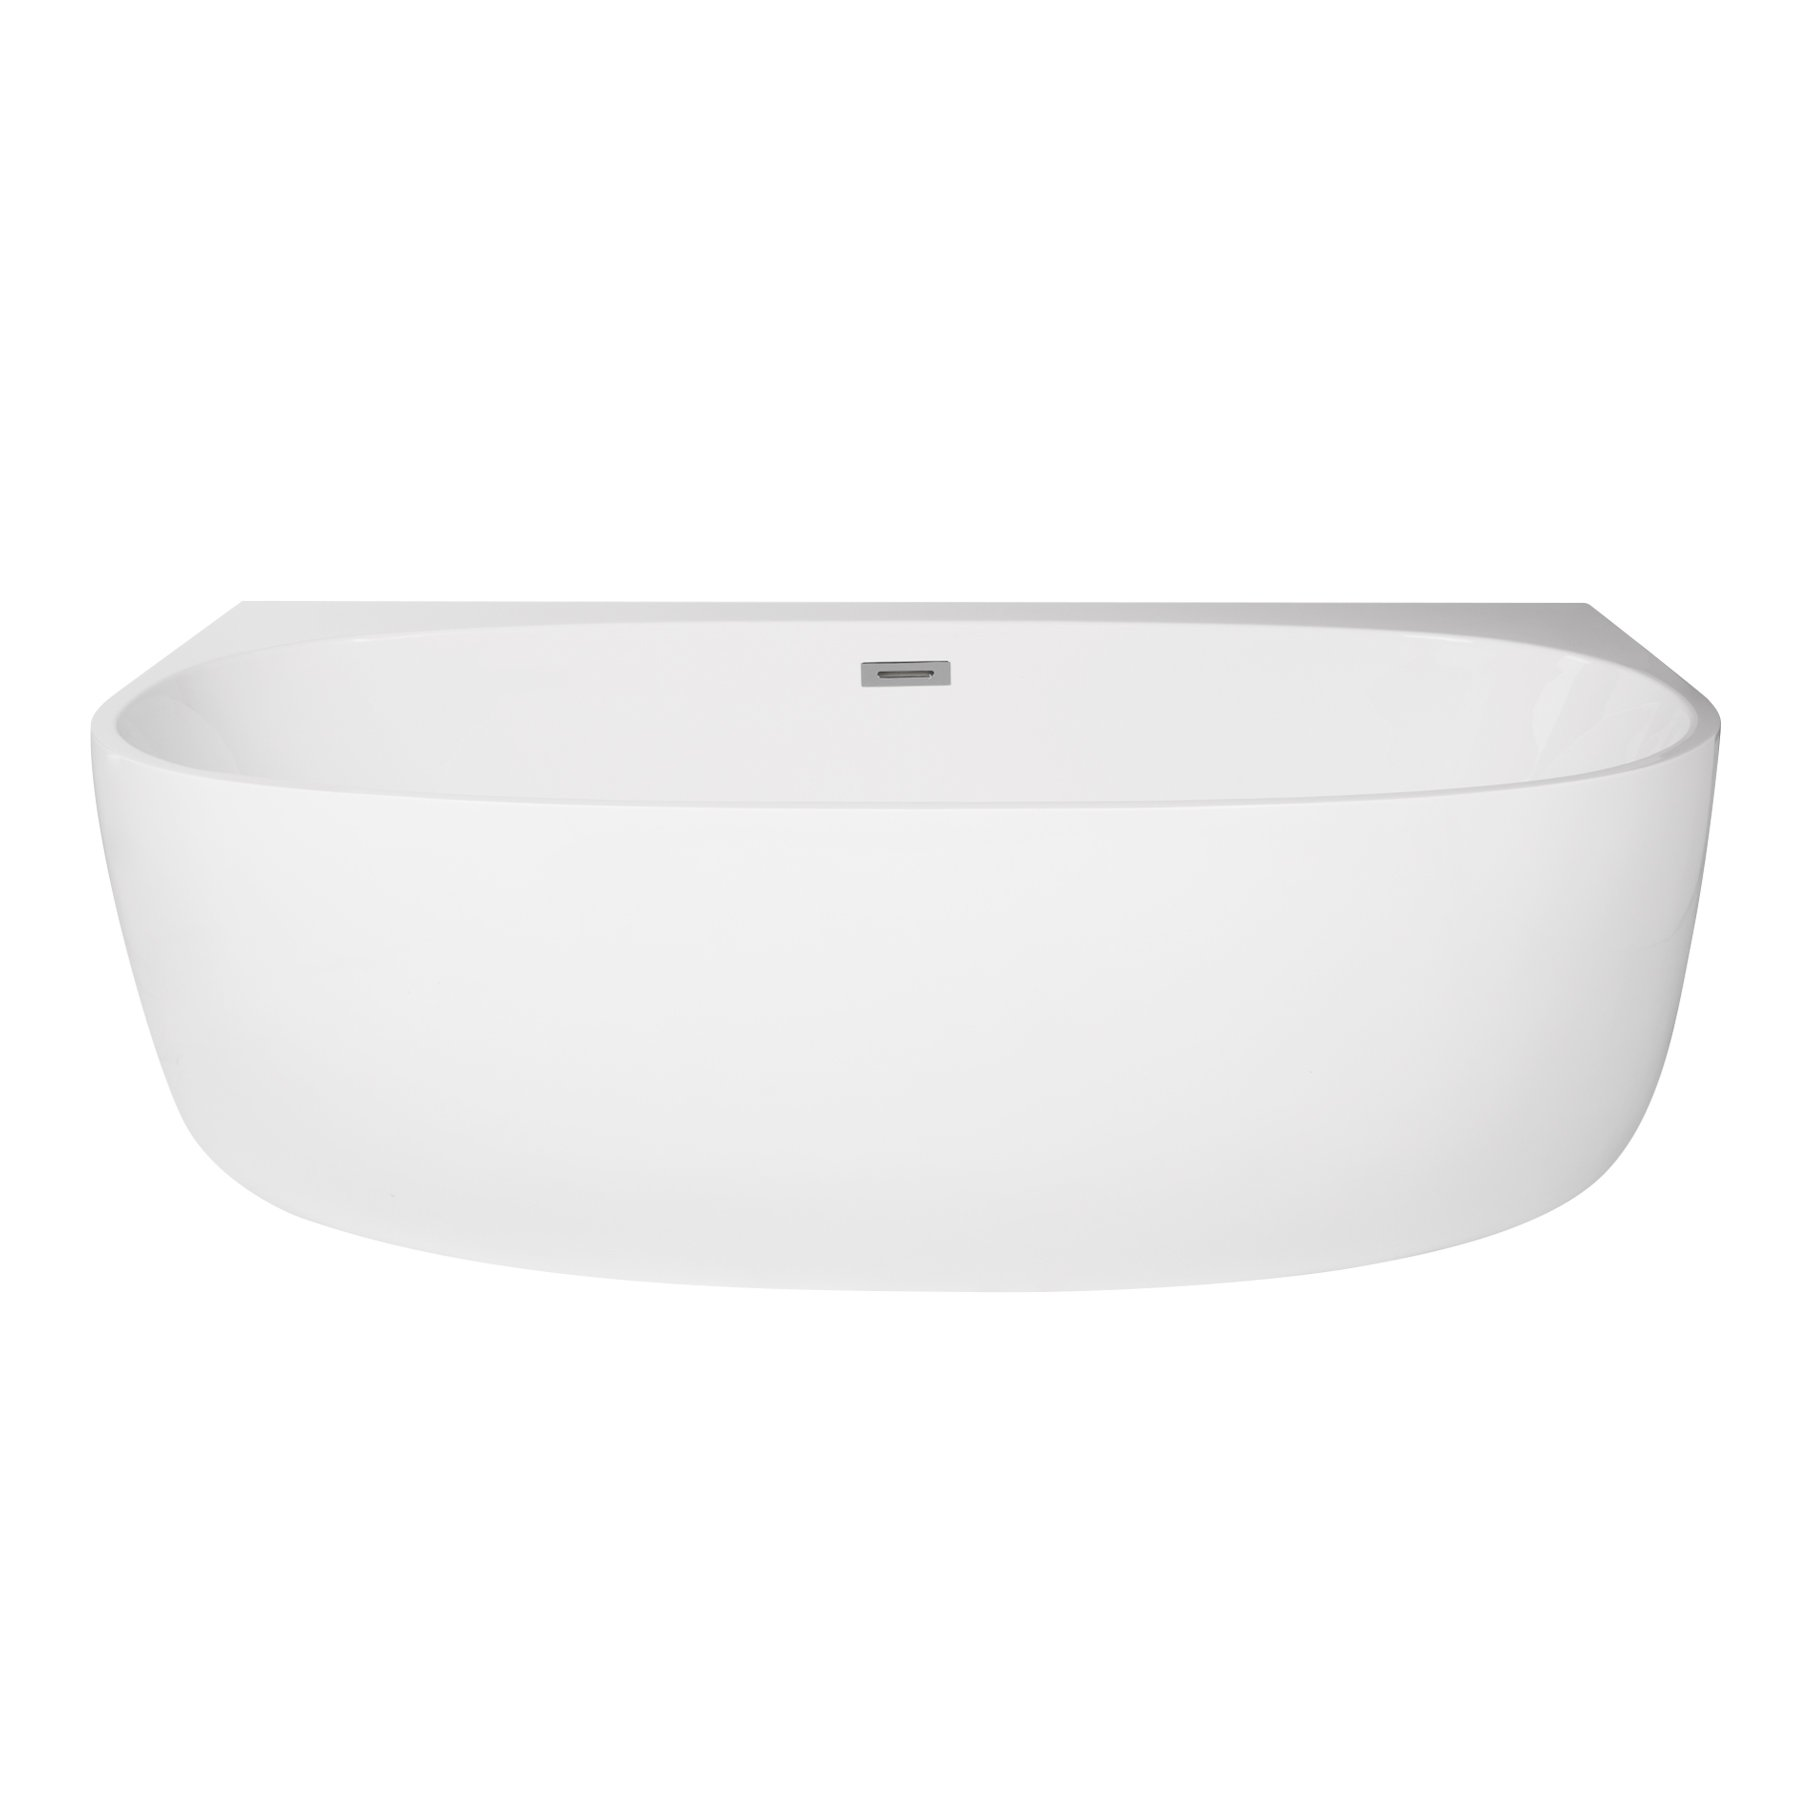 MAYKKE 59'' Ocala Acrylic Freestanding Alcove Tub | Modern Uniquely Shaped Bath Tub Soaker for Bathroom Lavatory, with Center Drain and Overflow | Rim Space for Accessories Storage | White, XDA1414101